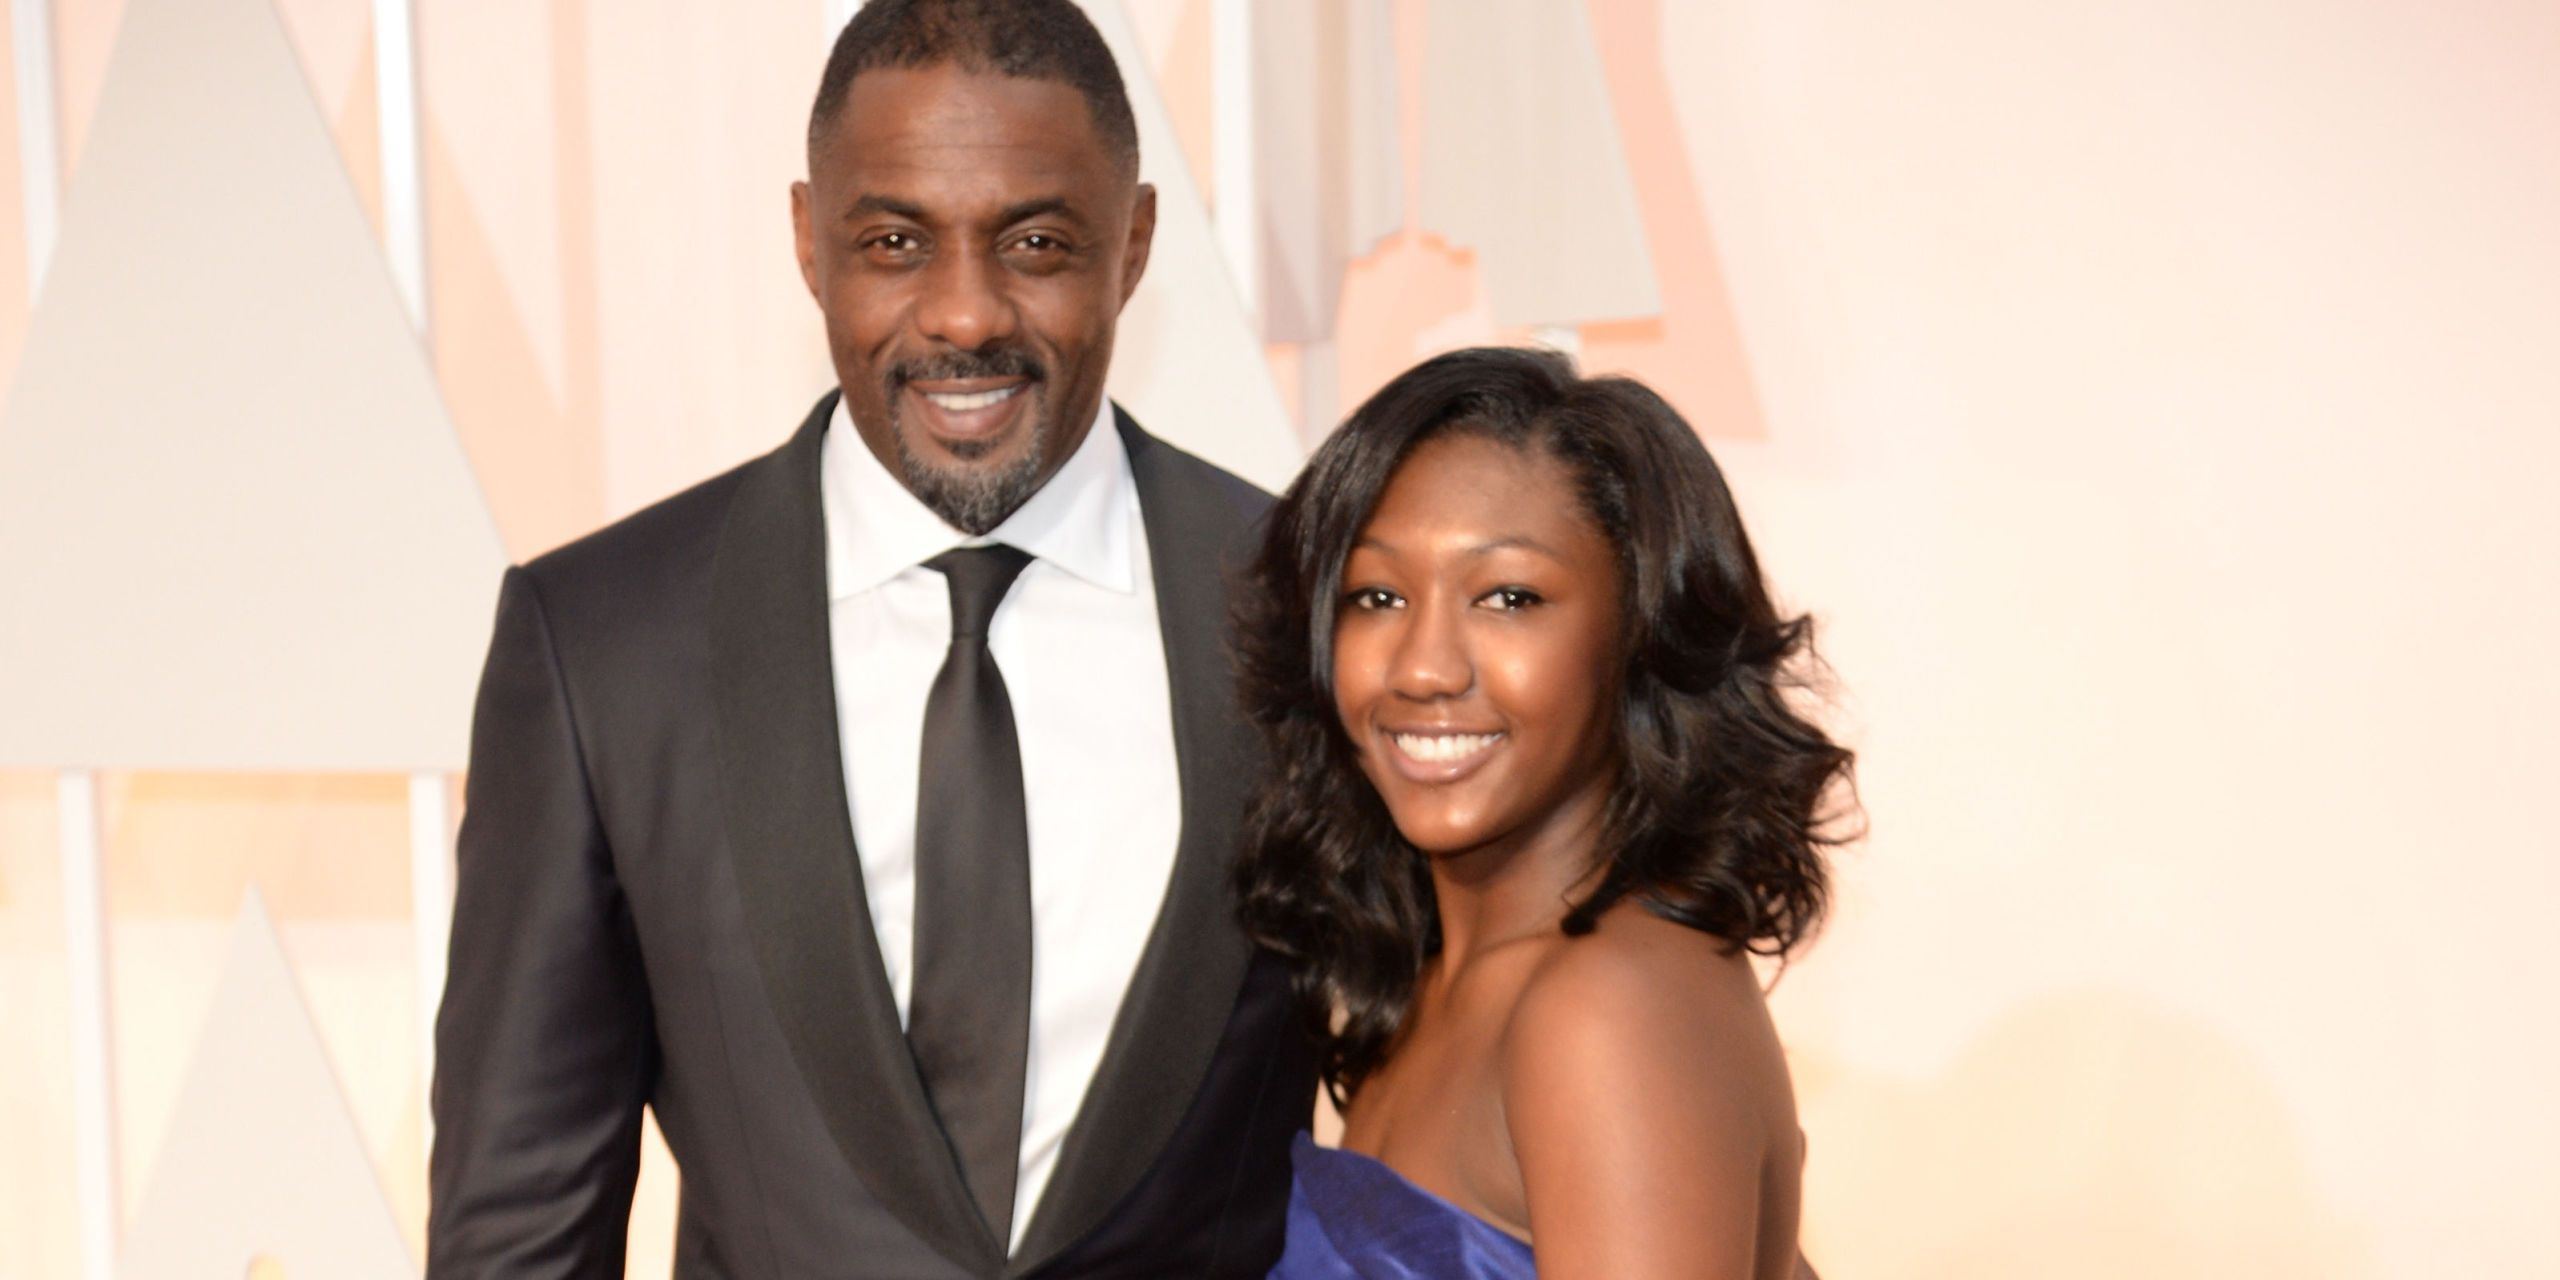 Who is idris elba currently dating